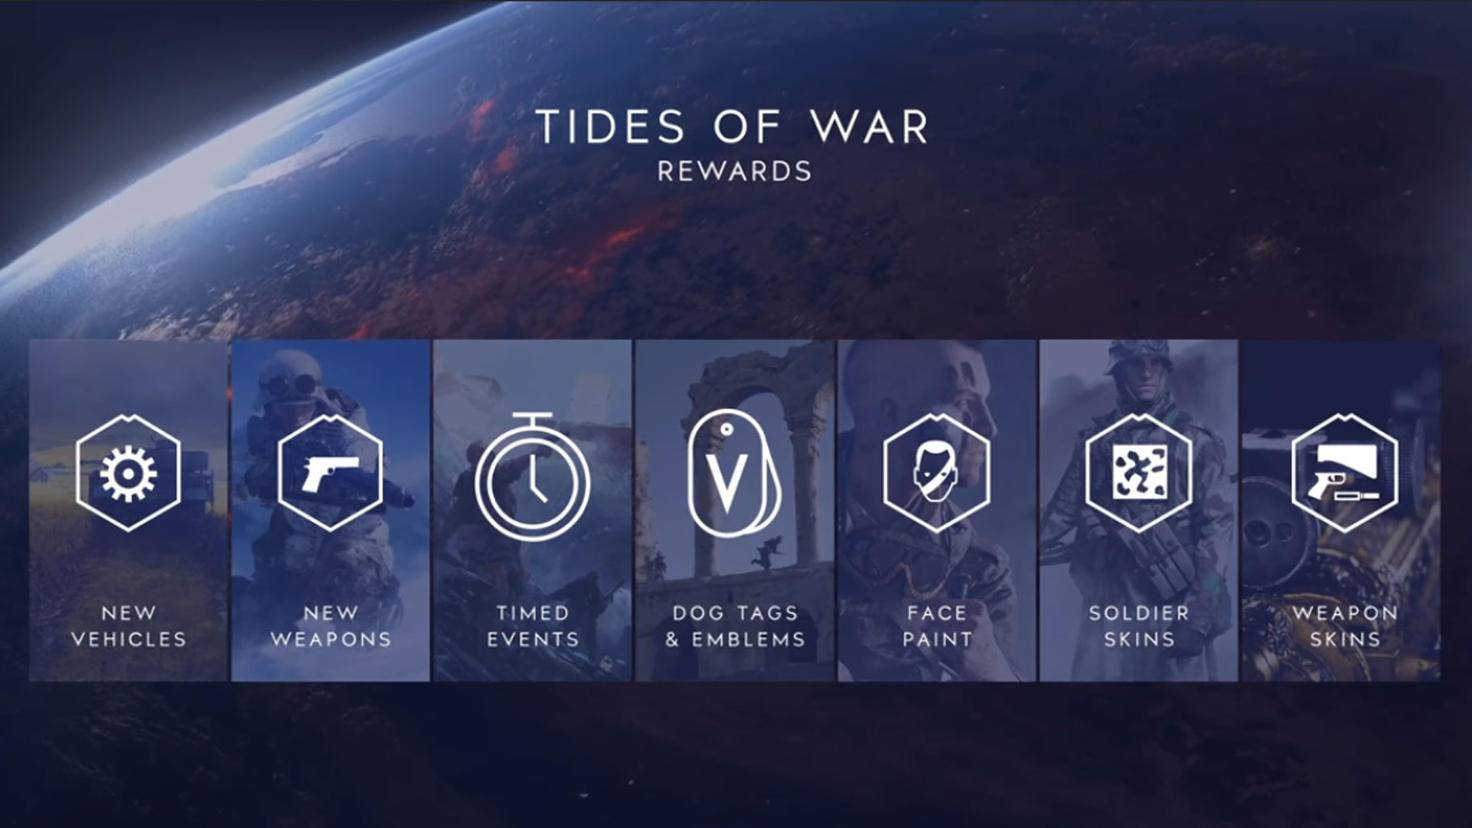 battlefield-5-reveal-event-tides-of-war-screenshot